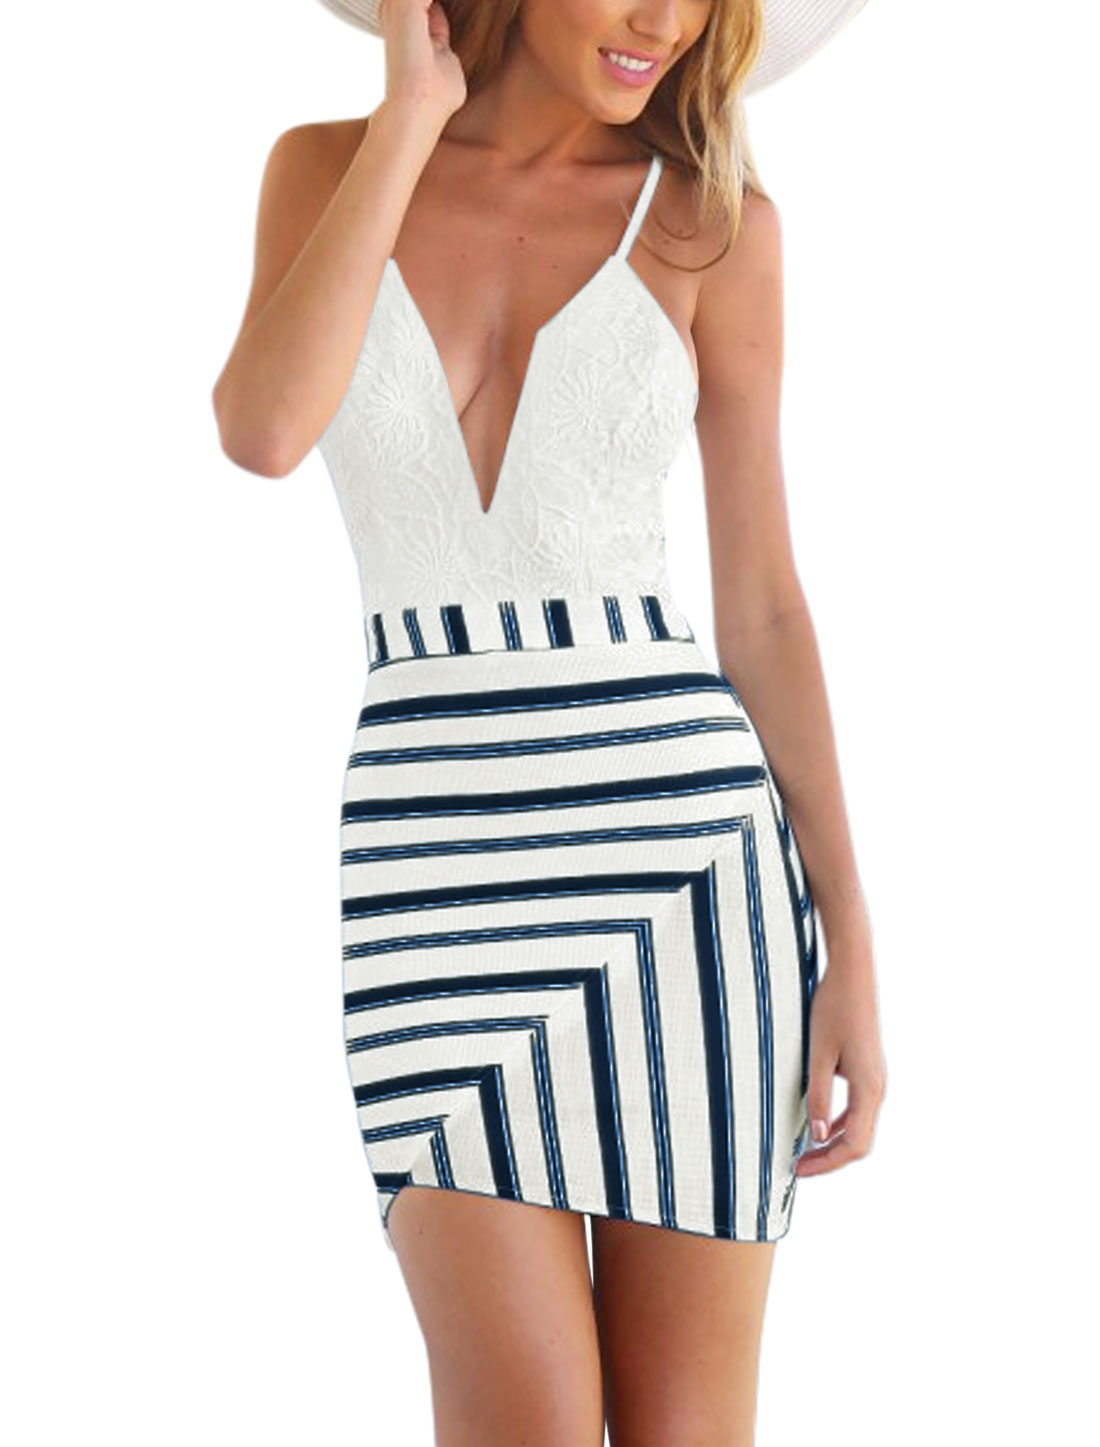 Woman Plunging Neckline Lace Panel Mixed Stripes Unlined Sheath Dress White XL